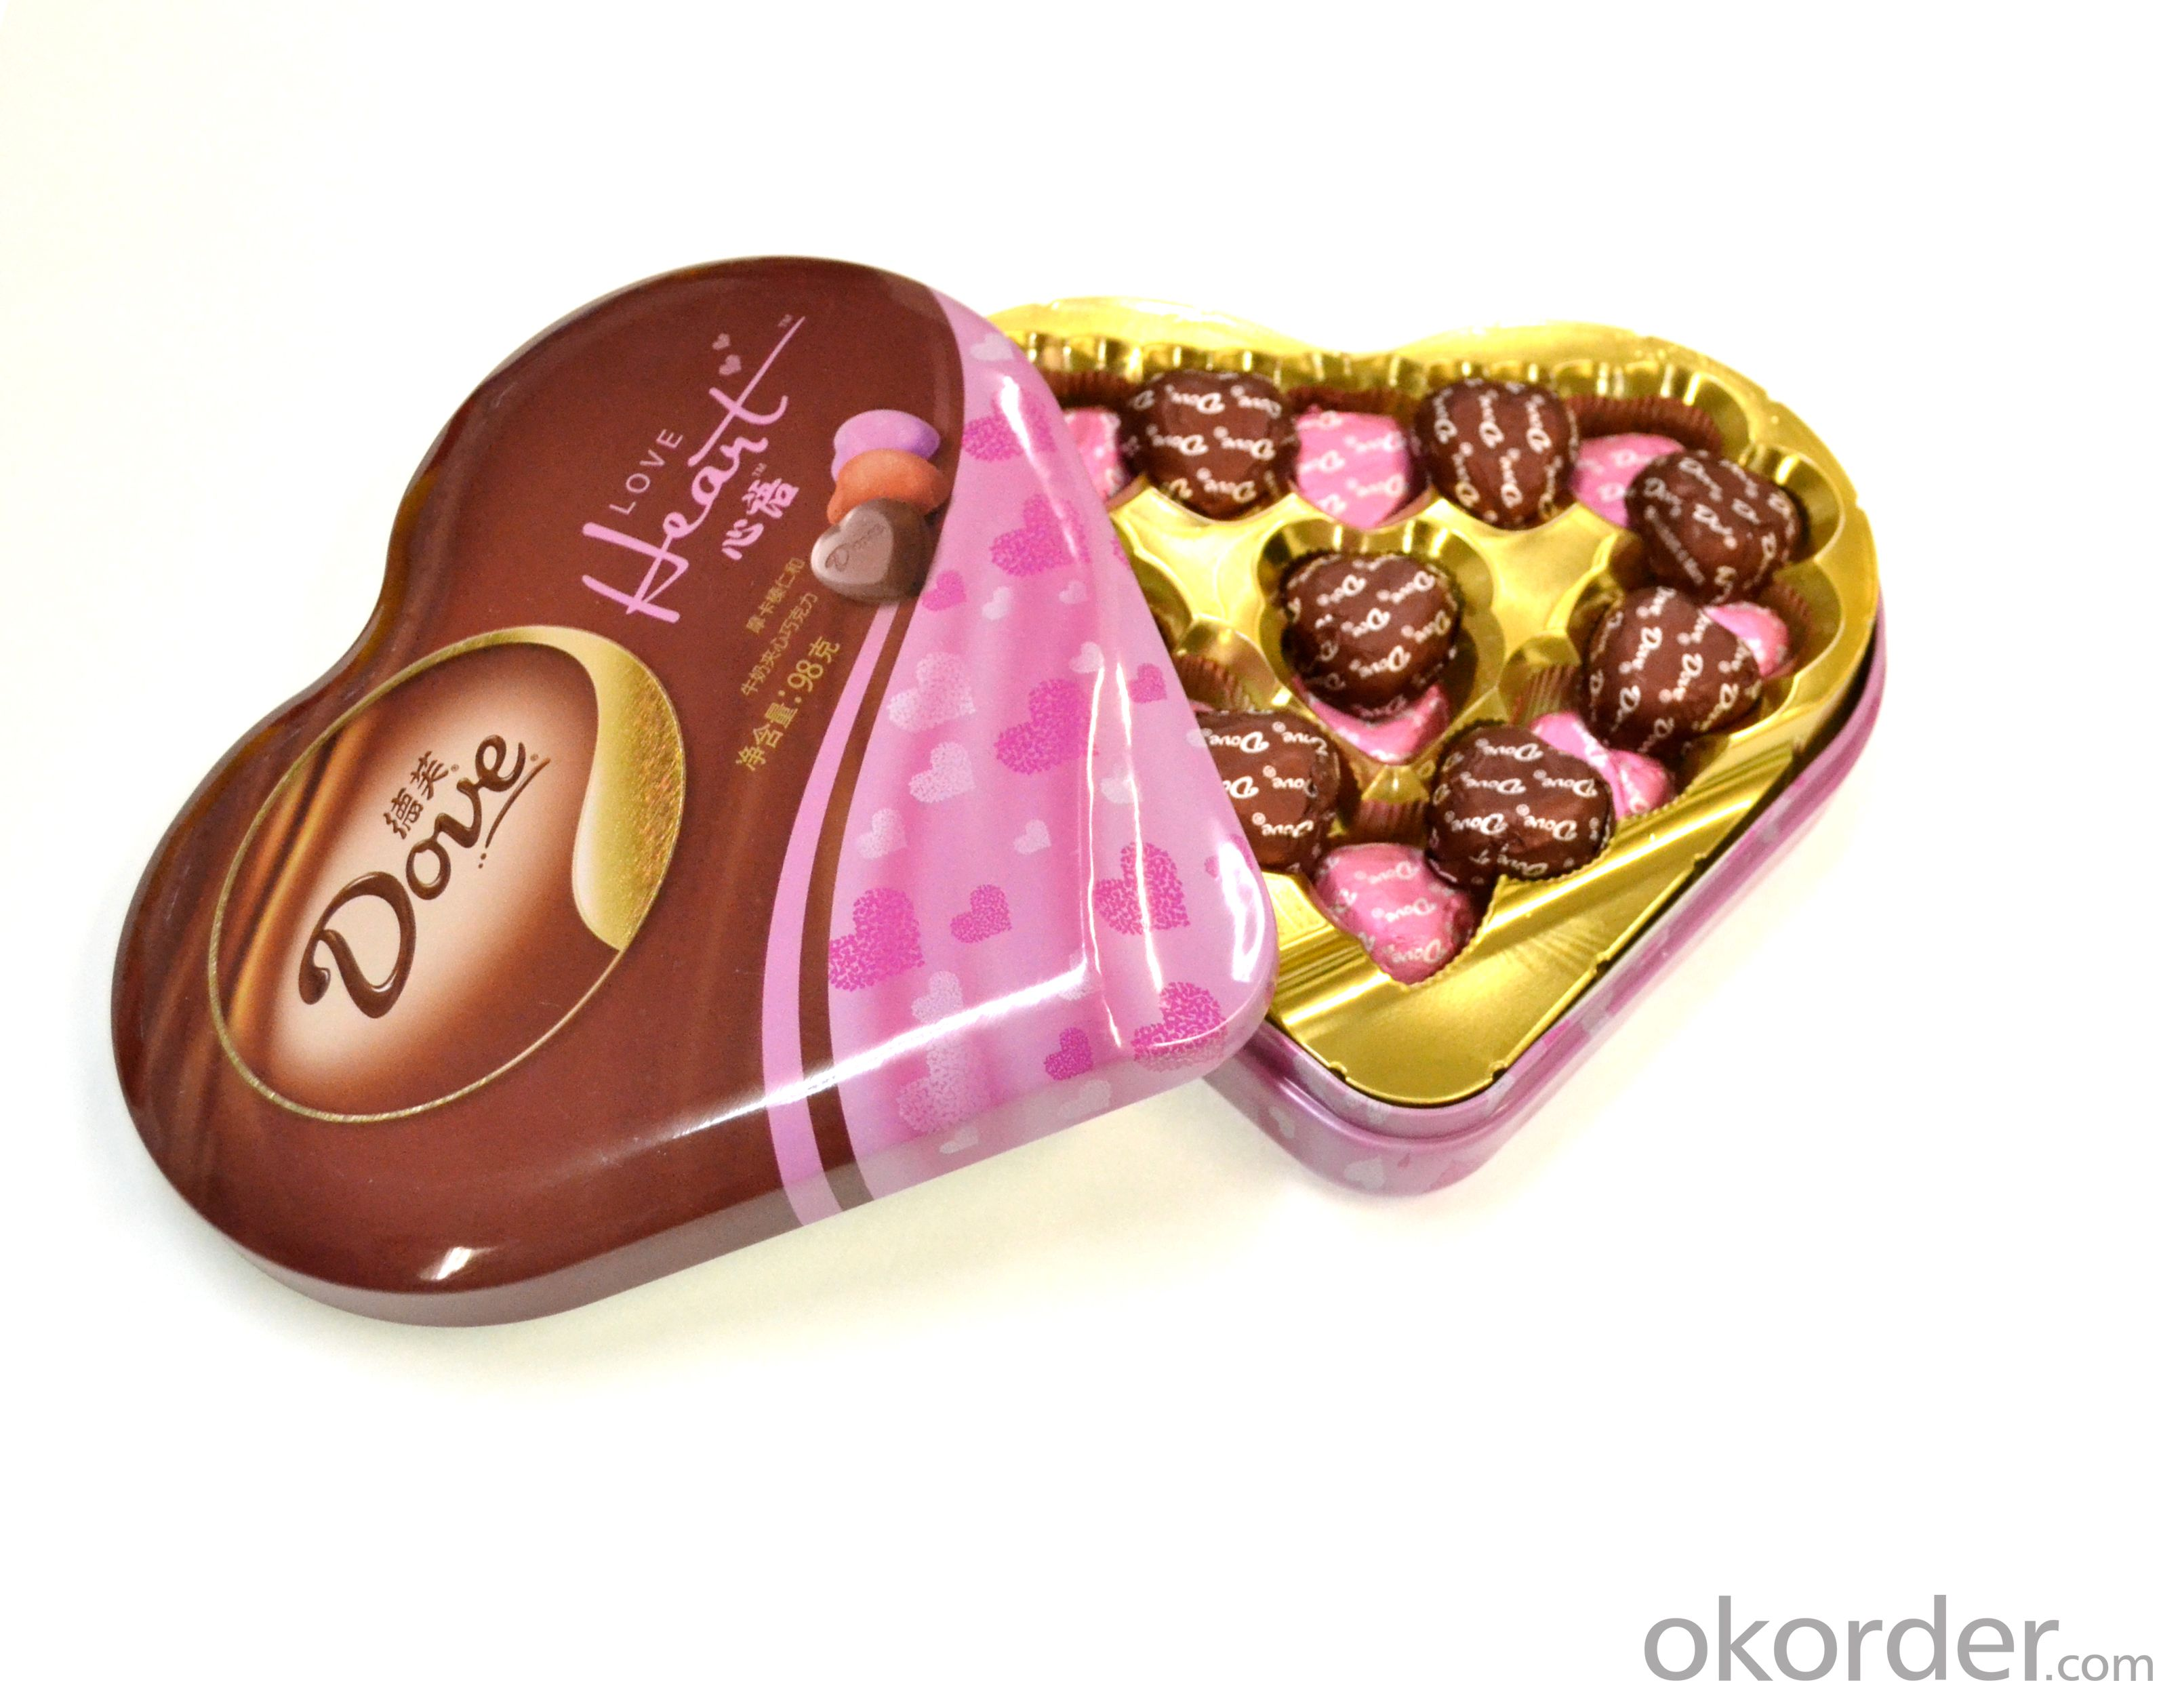 Heart shape chocolate can packaging, tinplate